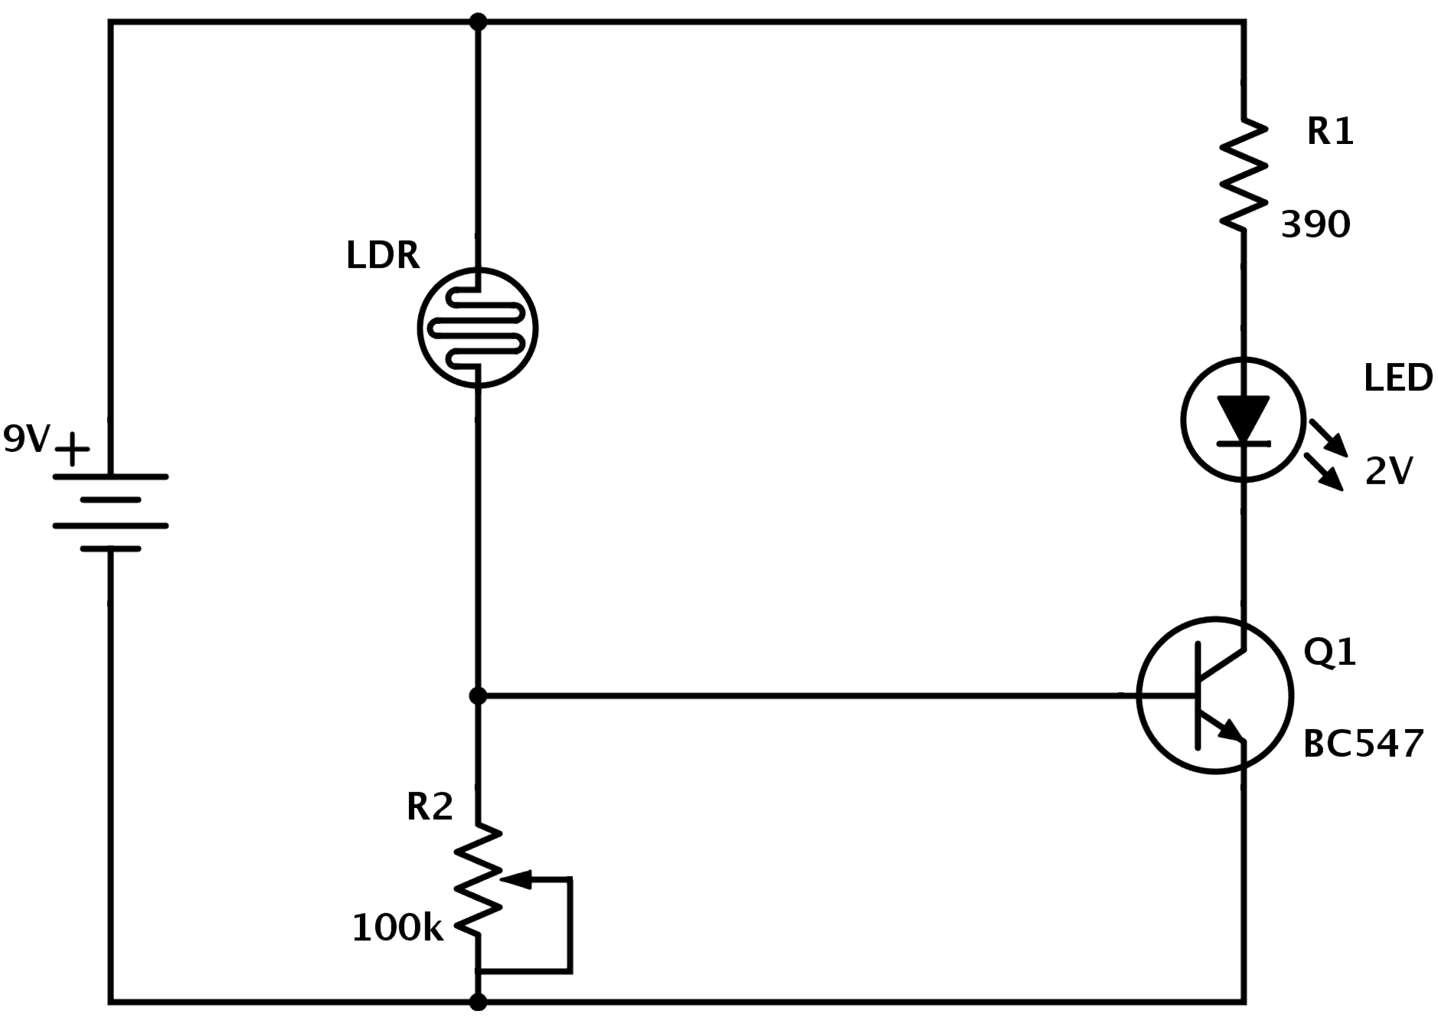 hight resolution of ldr circuit diagram build electronic circuits photocell sensor in addition simple led circuit diagram wiring